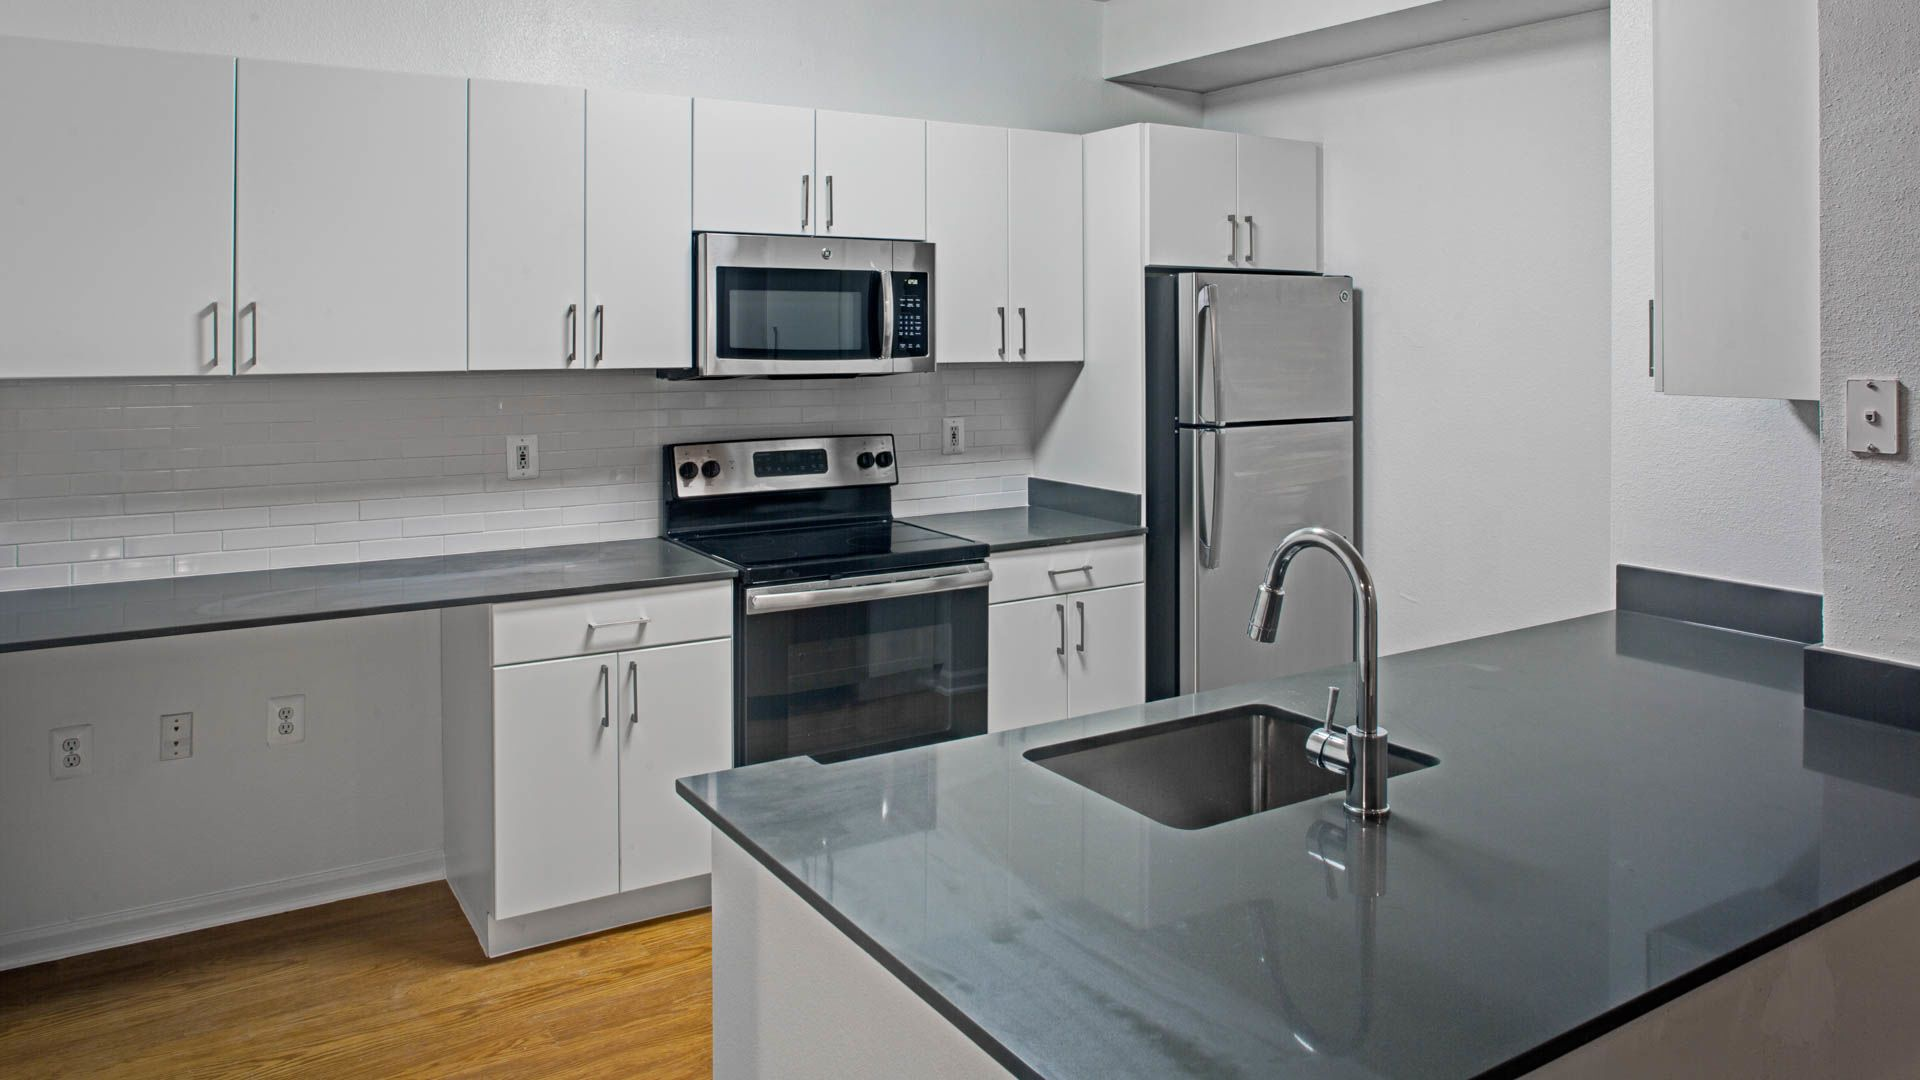 Reserve at Potomac Yard Apartments - Kitchen